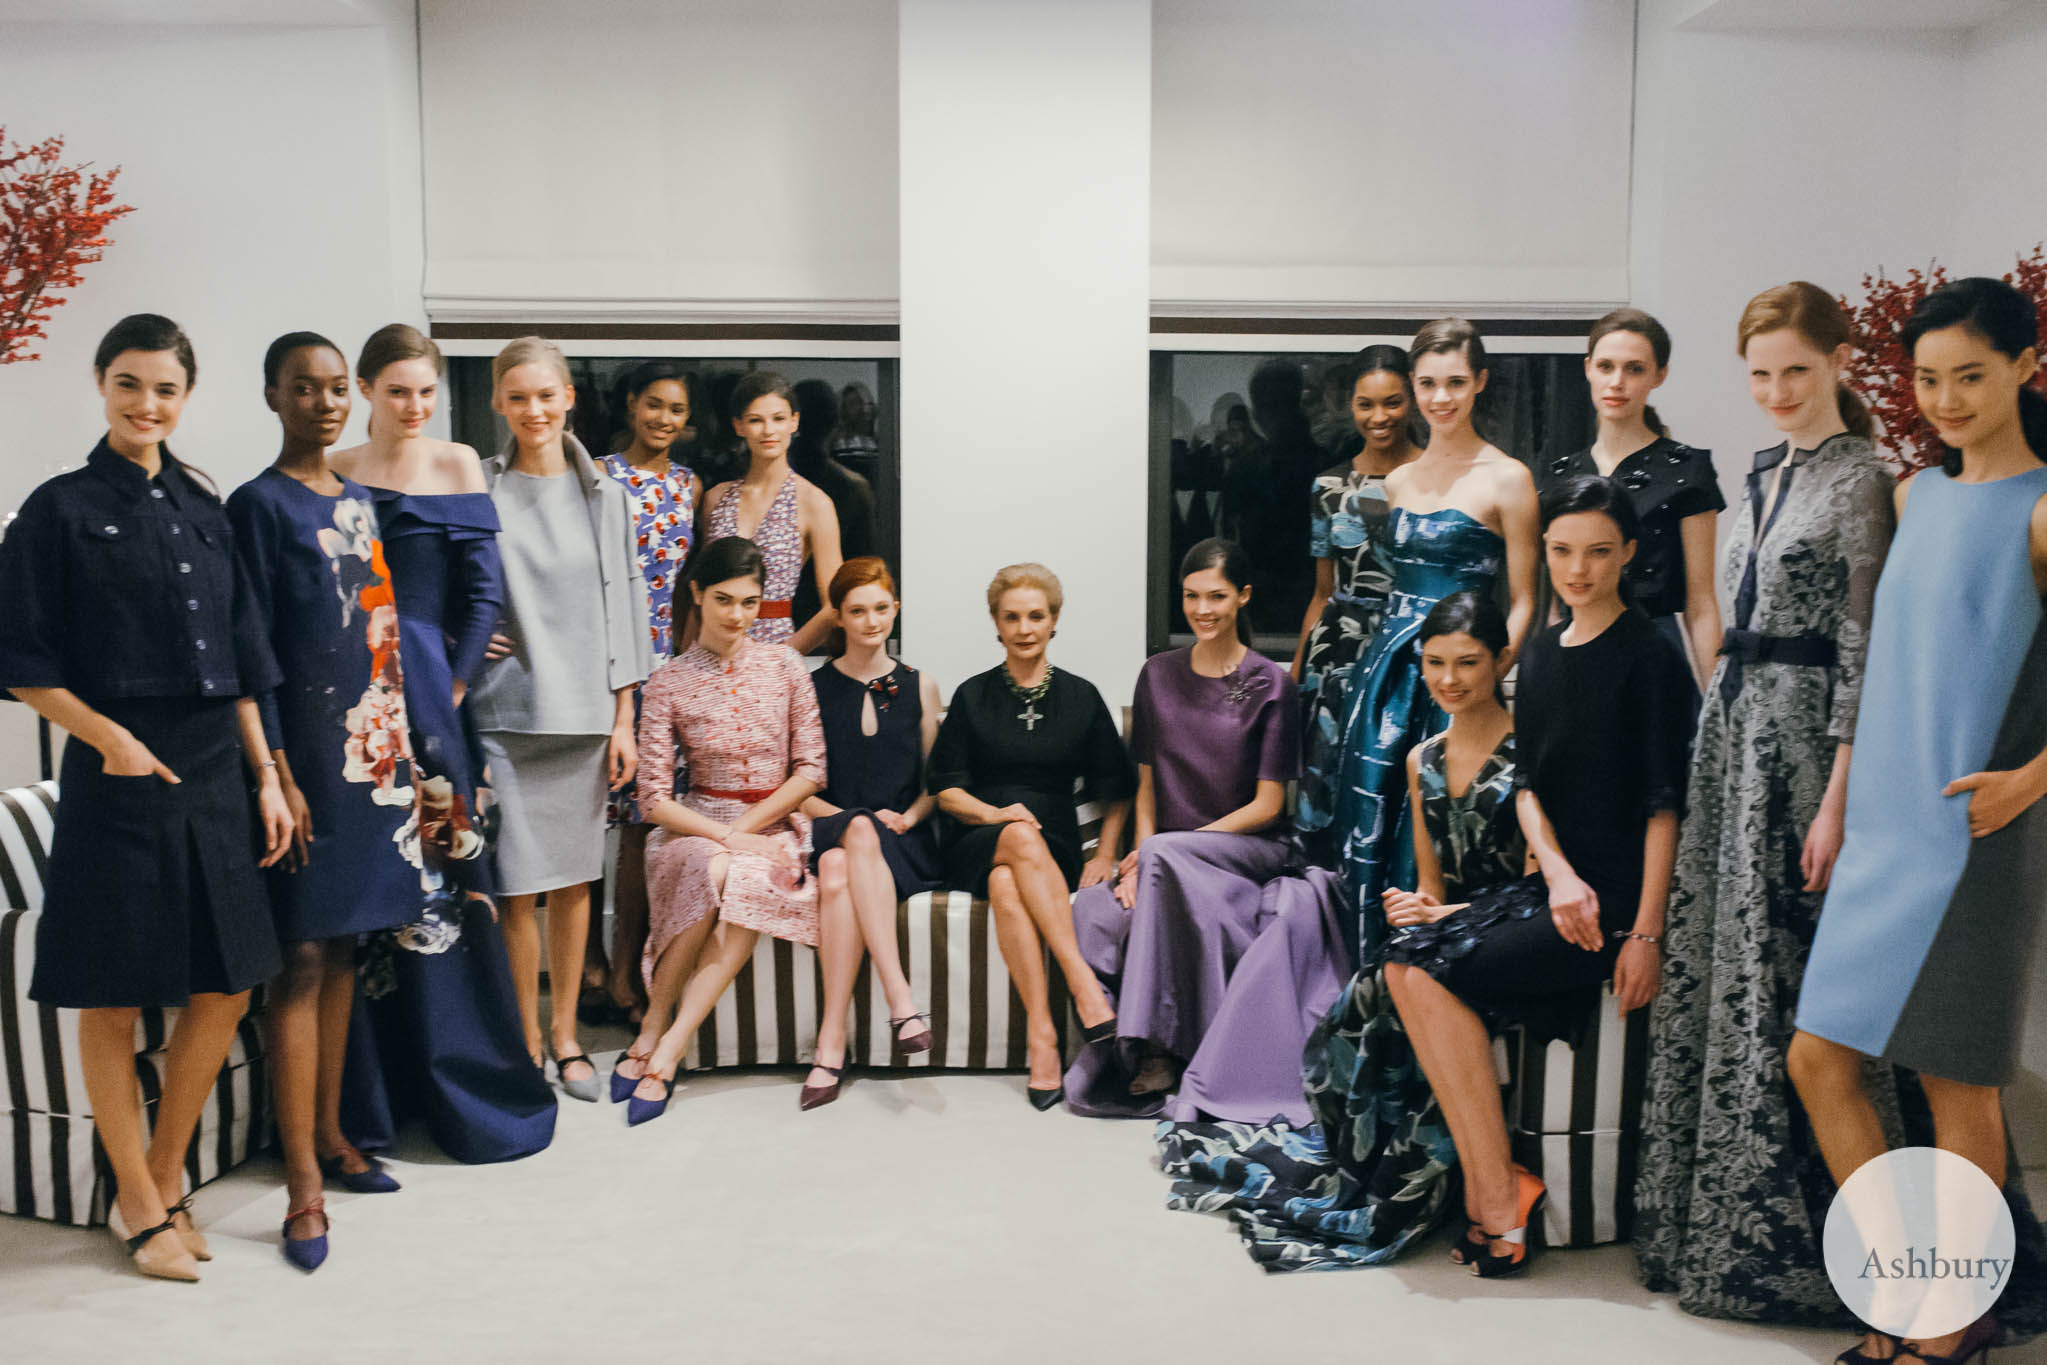 carolina herrera pre-fall 15 35mm